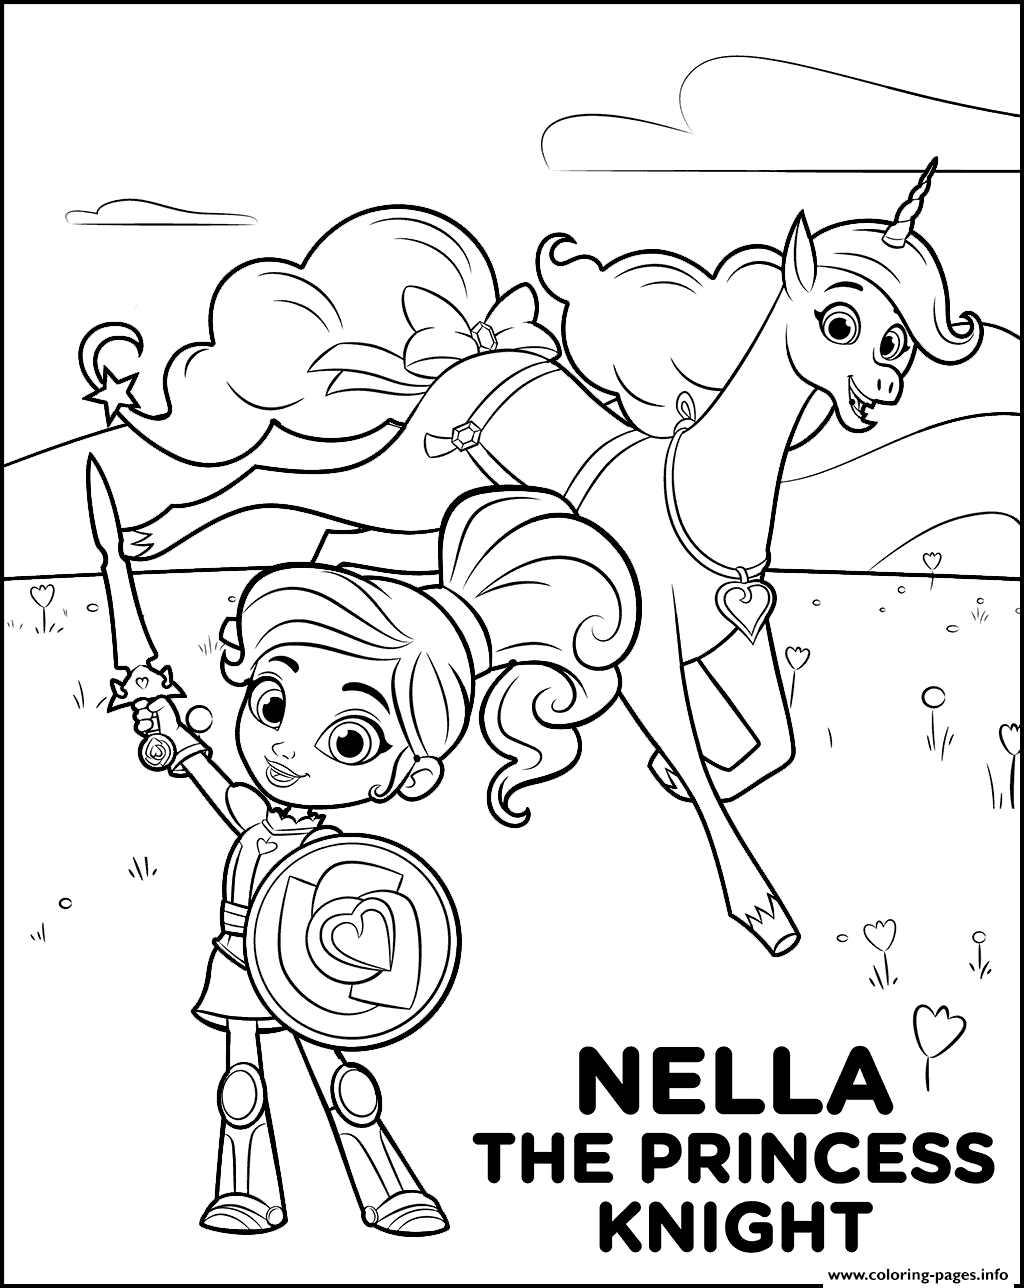 Nella The Princess Knight Coloring Pages Printable